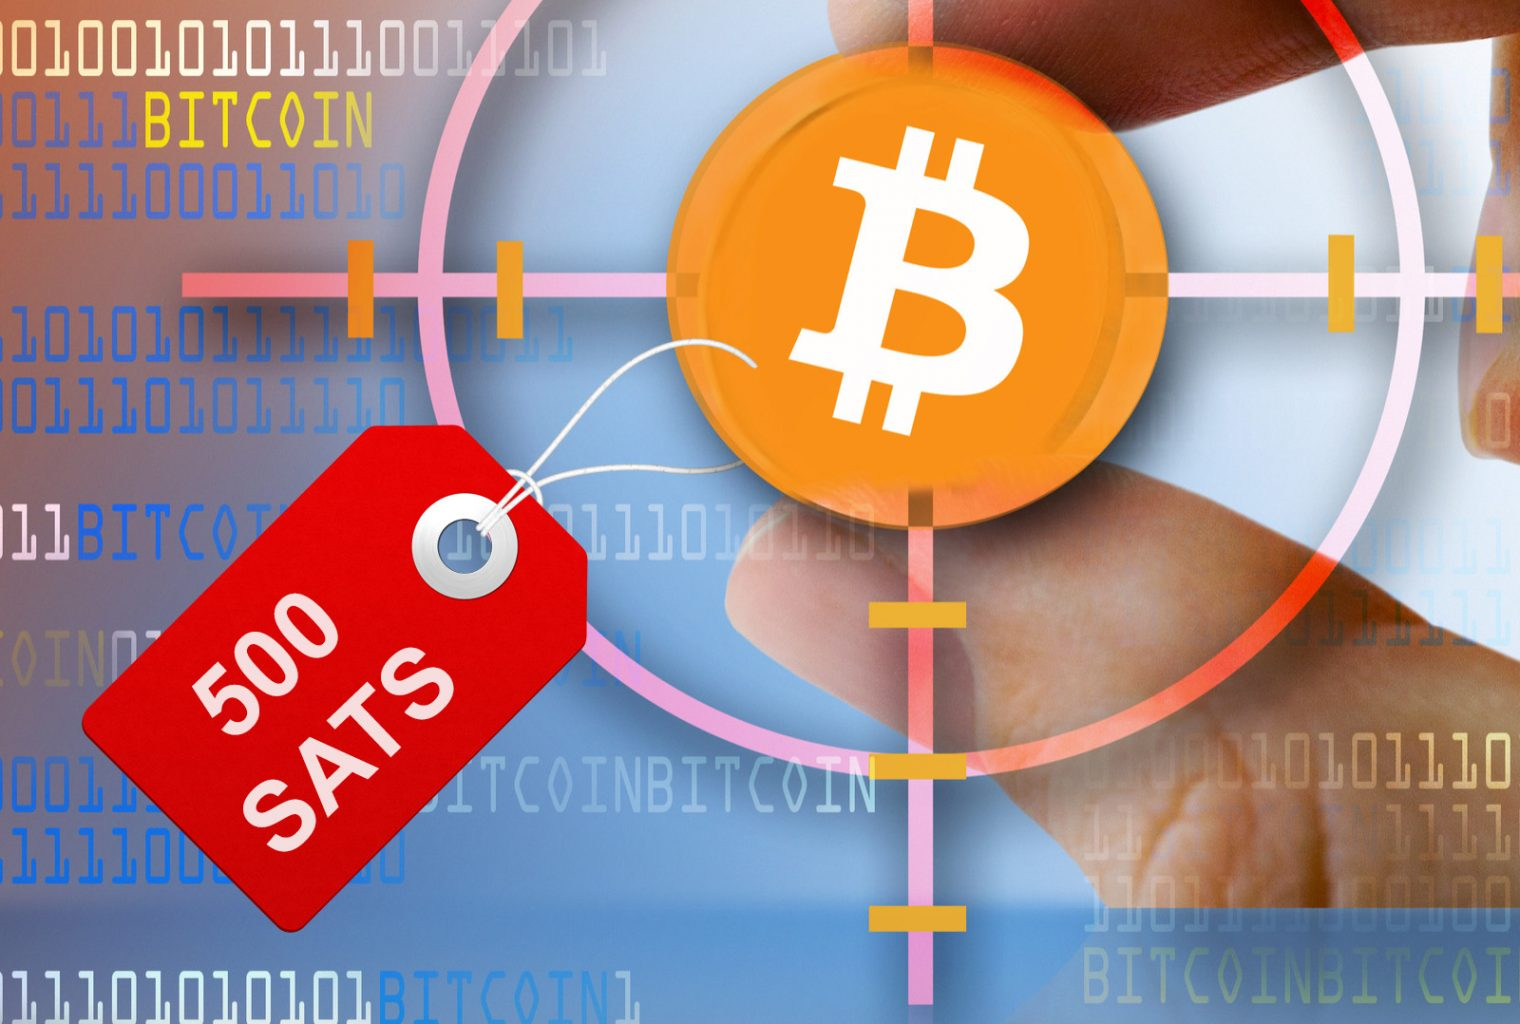 It's Time We Began Pricing Things in Satoshis